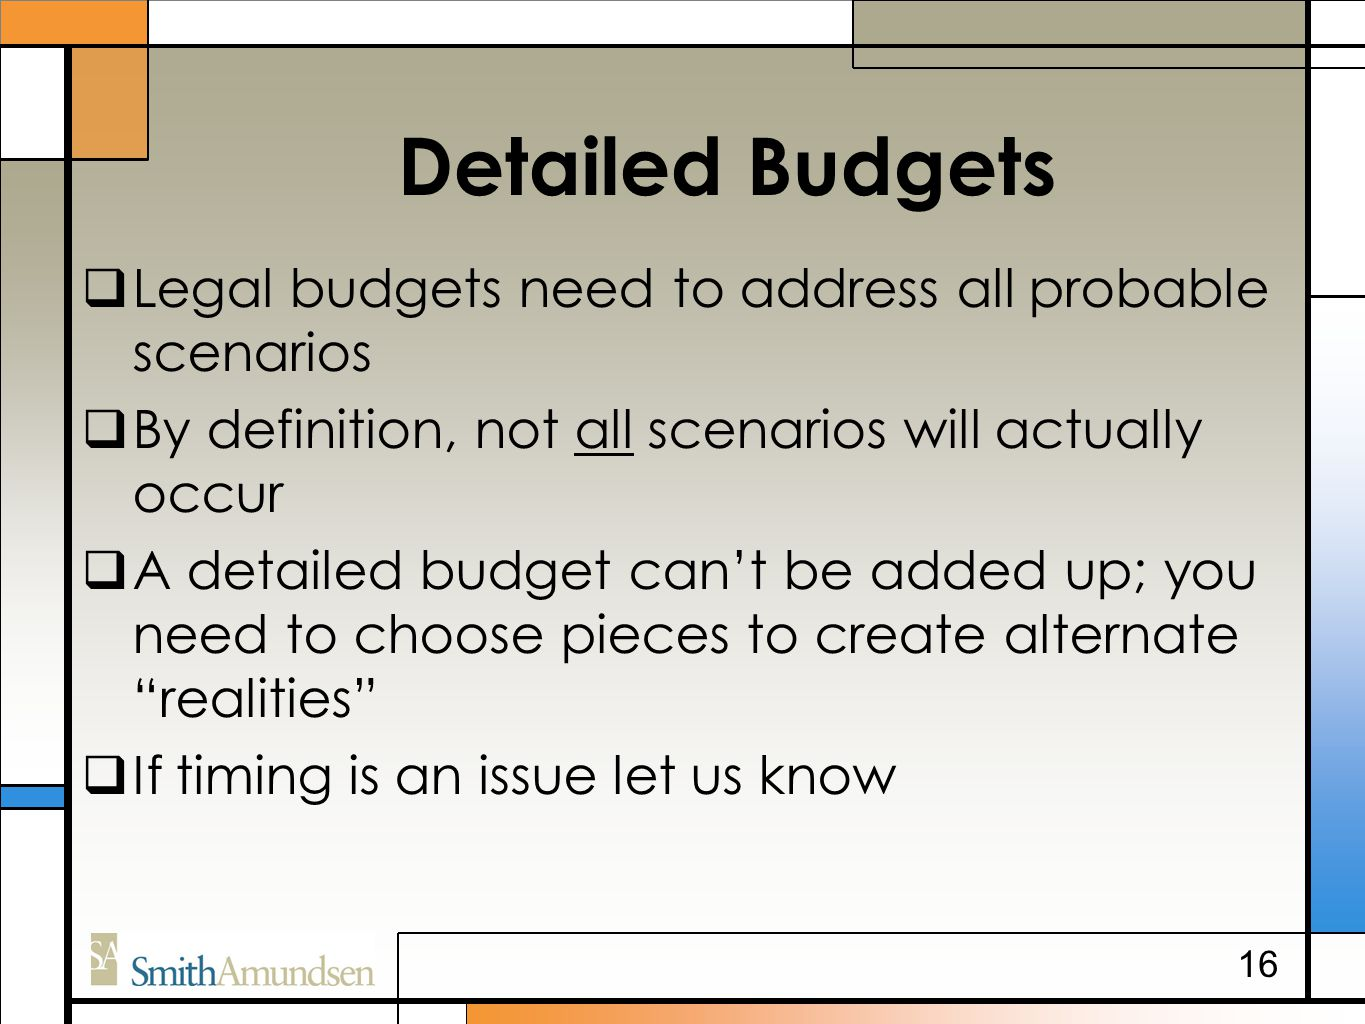 Detailed Budgets  Legal budgets need to address all probable scenarios  By definition, not all scenarios will actually occur  A detailed budget can't be added up; you need to choose pieces to create alternate realities  If timing is an issue let us know 16